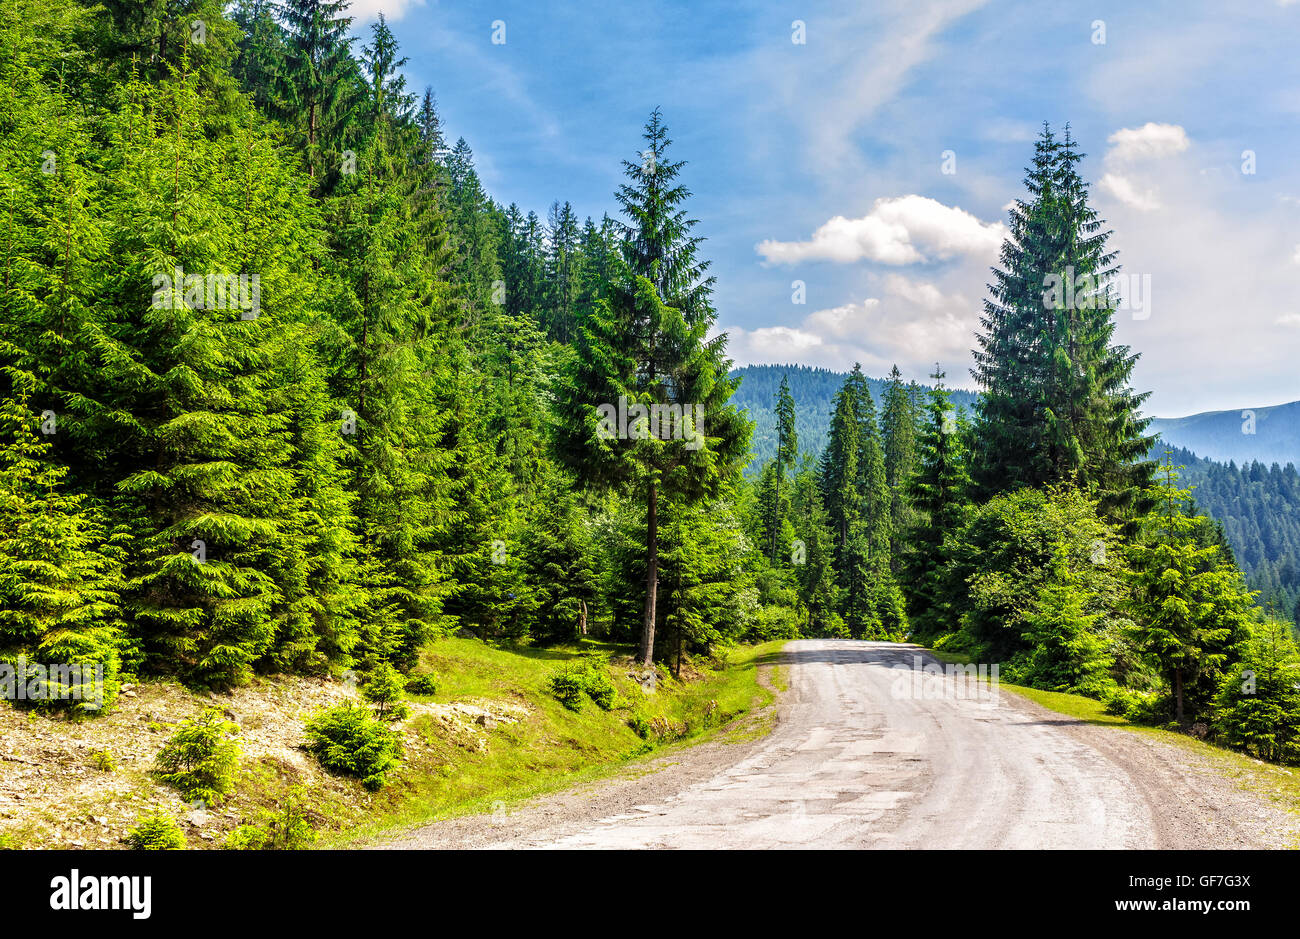 old cracked asphalt road going in mountains and passes through the green conifer forest - Stock Image